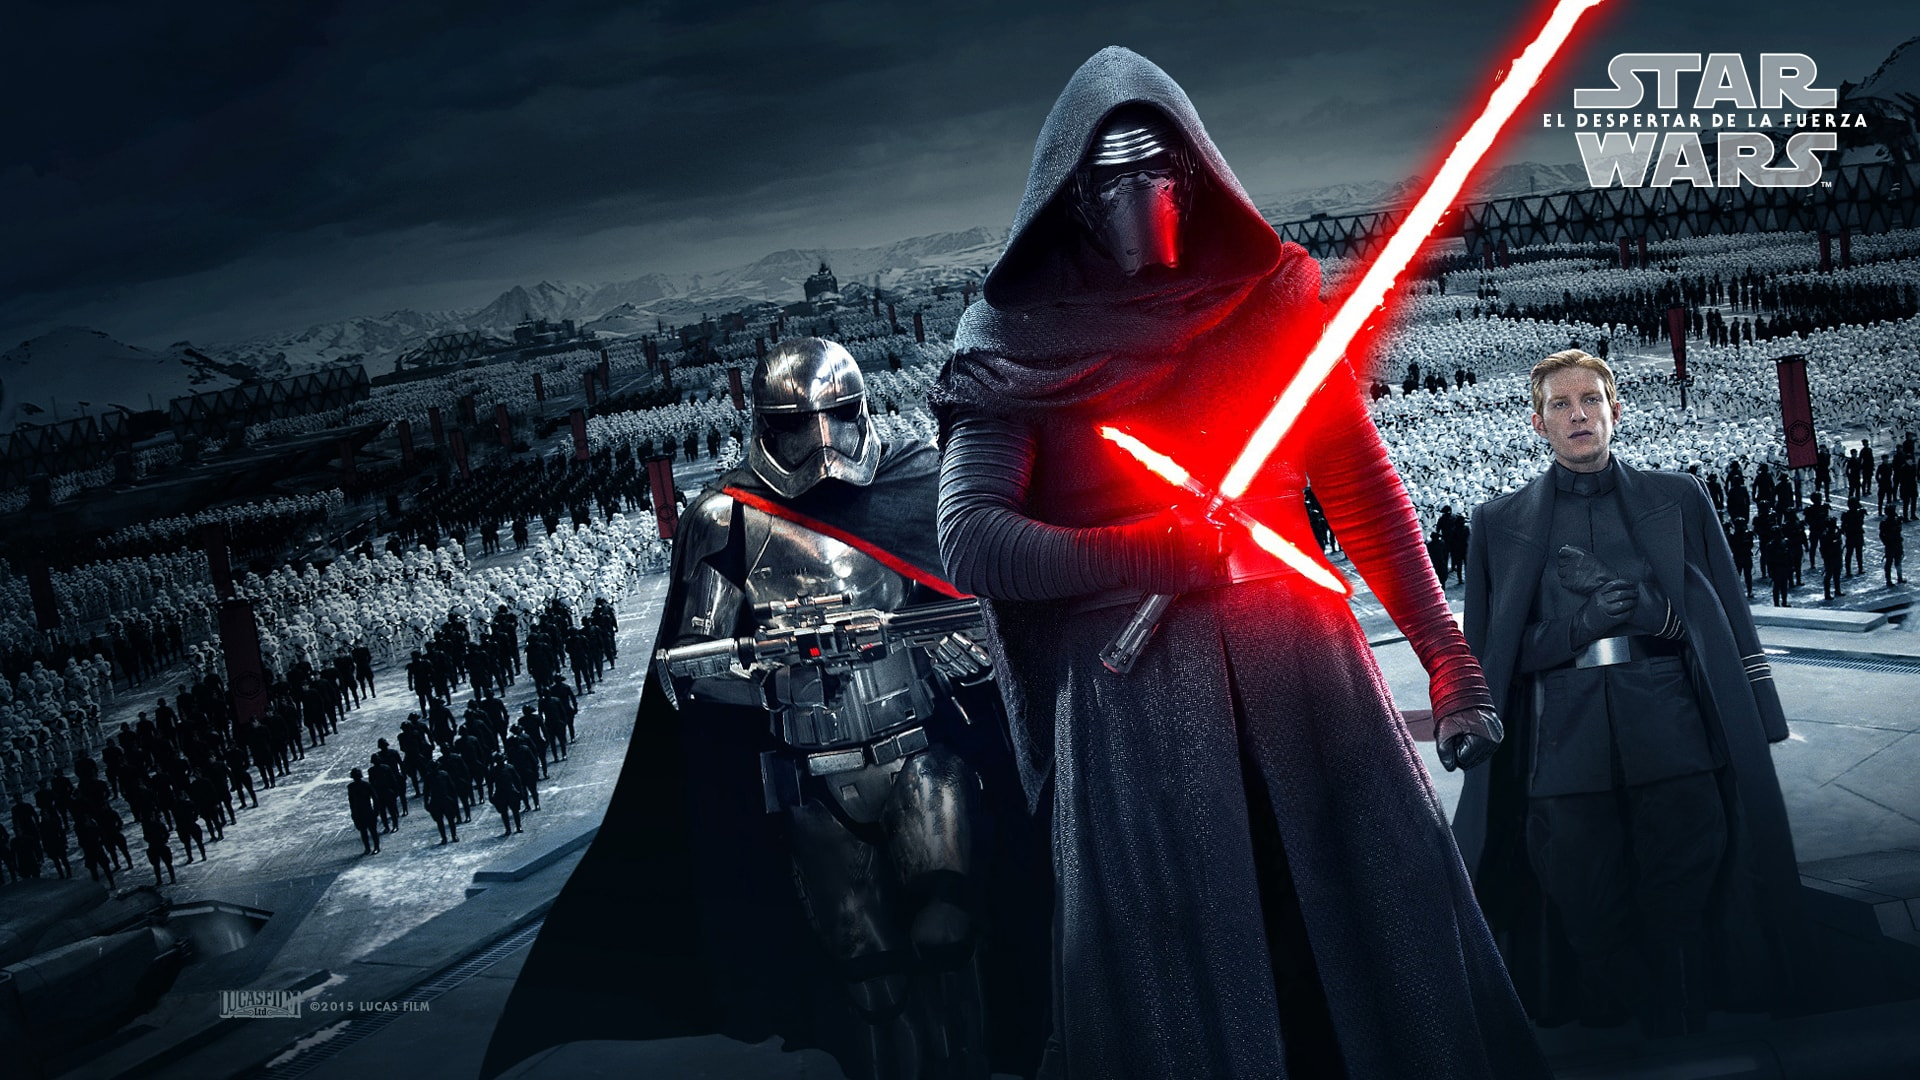 Star Wars Episode Vii The Force Awakens Hd Wallpapers 7wallpapers Net